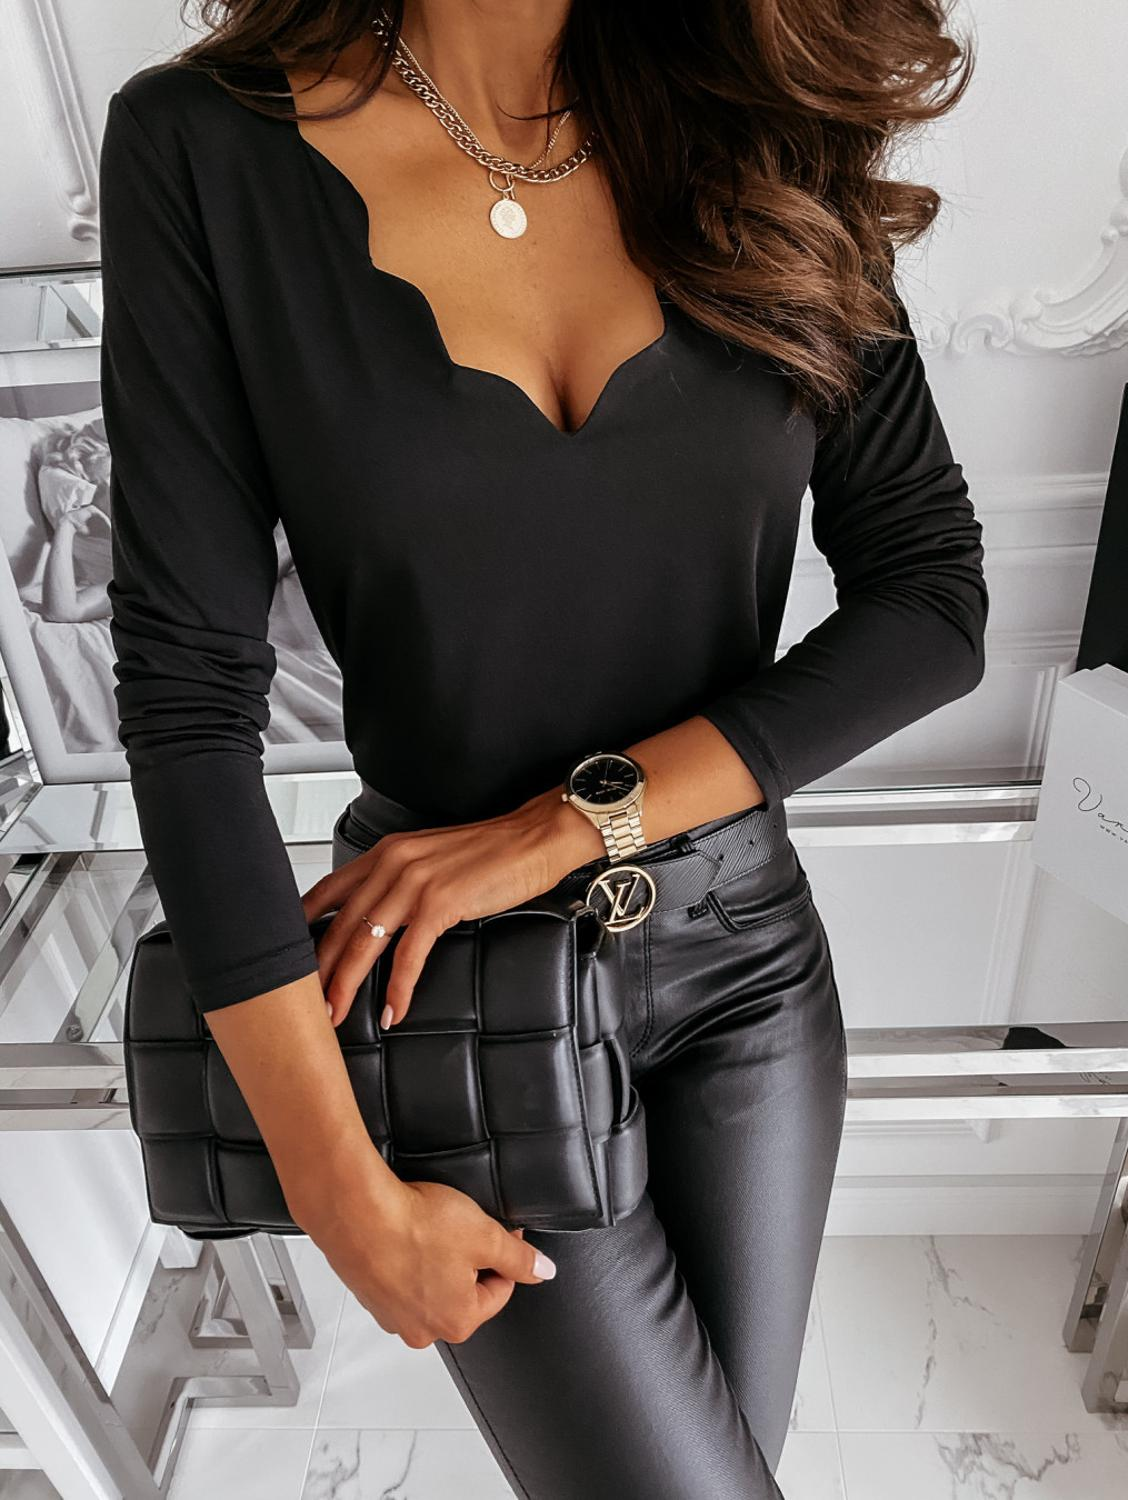 Sexy V Neck Shirt Tops Solid Color Autumn Winter Female Fashion Simple Style Slimming White Khaki Black Bottoming Office Blouse|Blouses & Shirts| - AliExpress